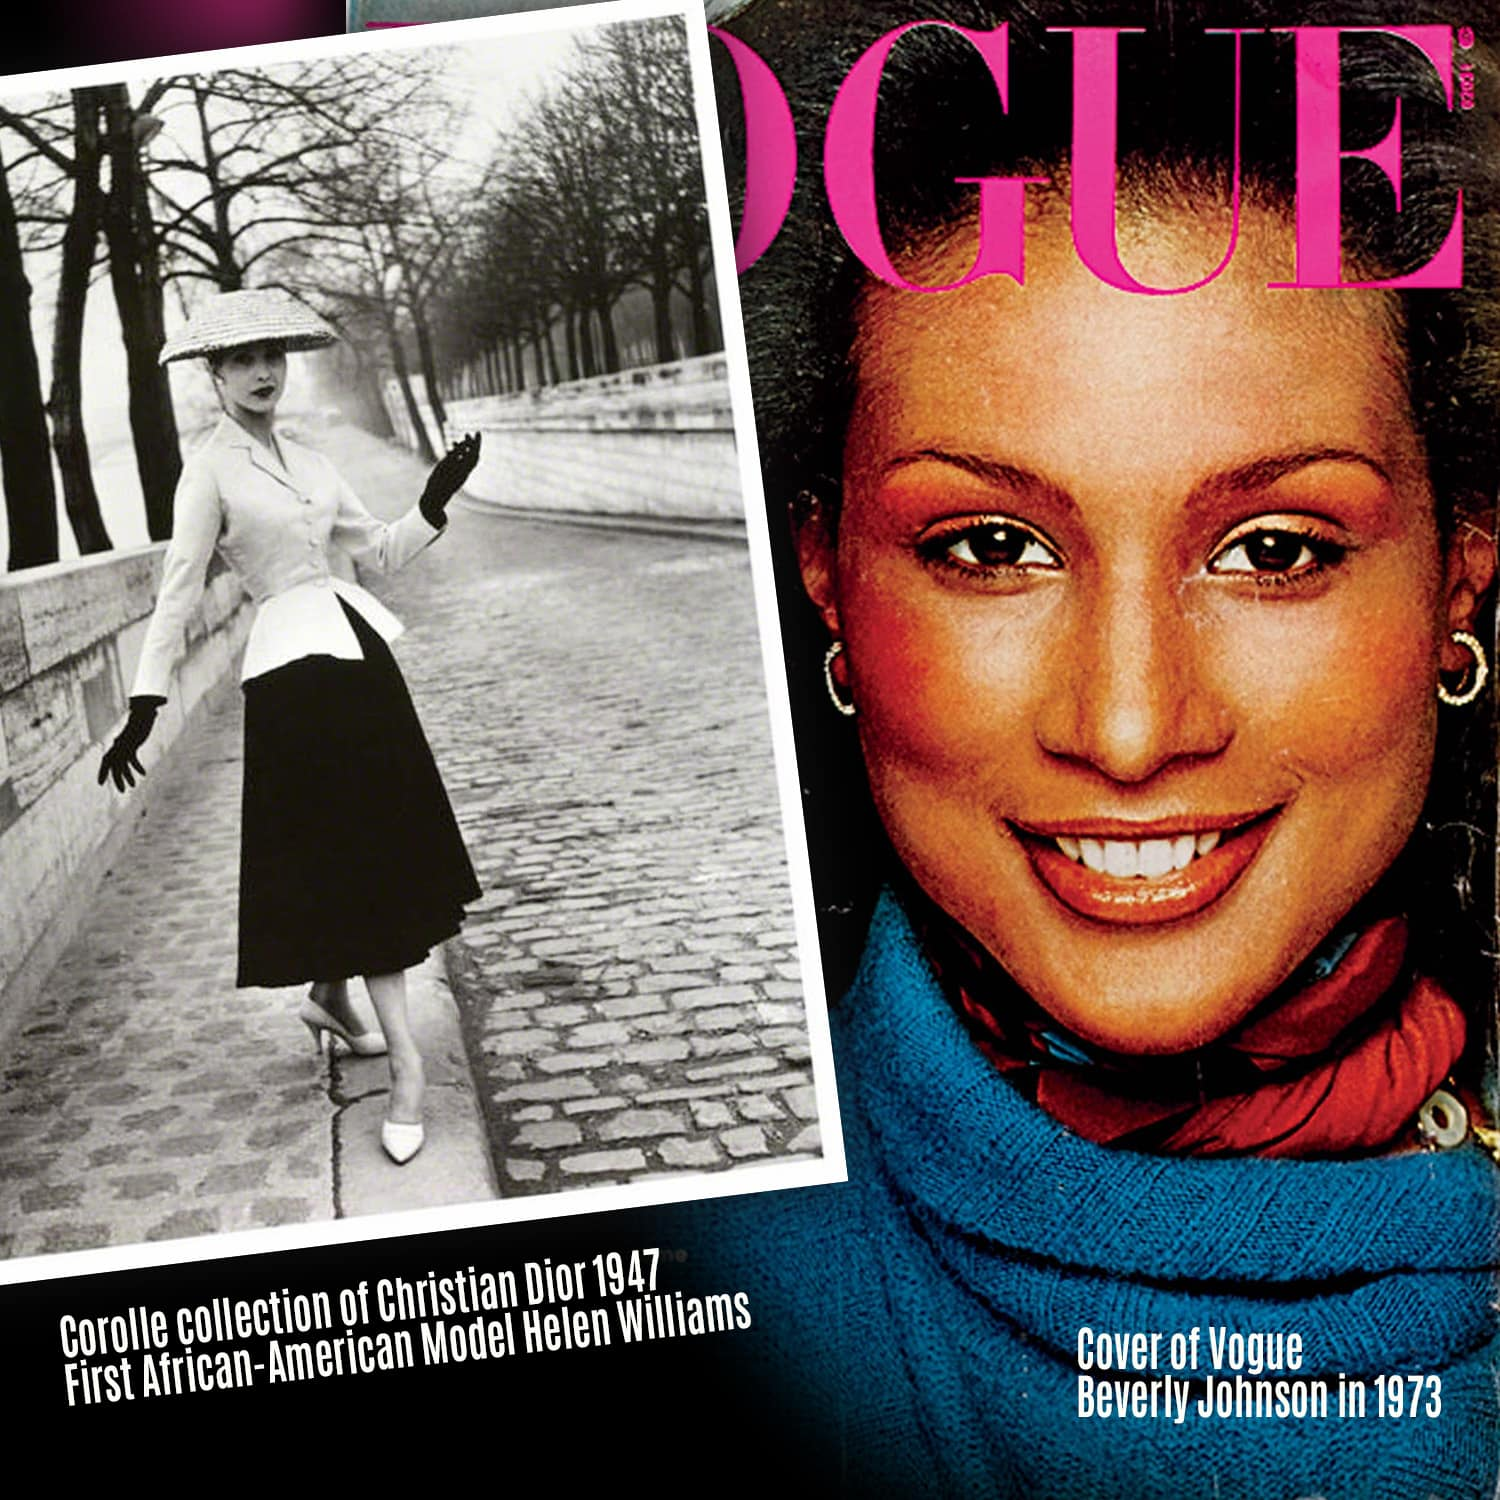 Christian Dior 1947, First African-American Model Helen Williams and Beverly Johnson on Cover of Vogue in 1973